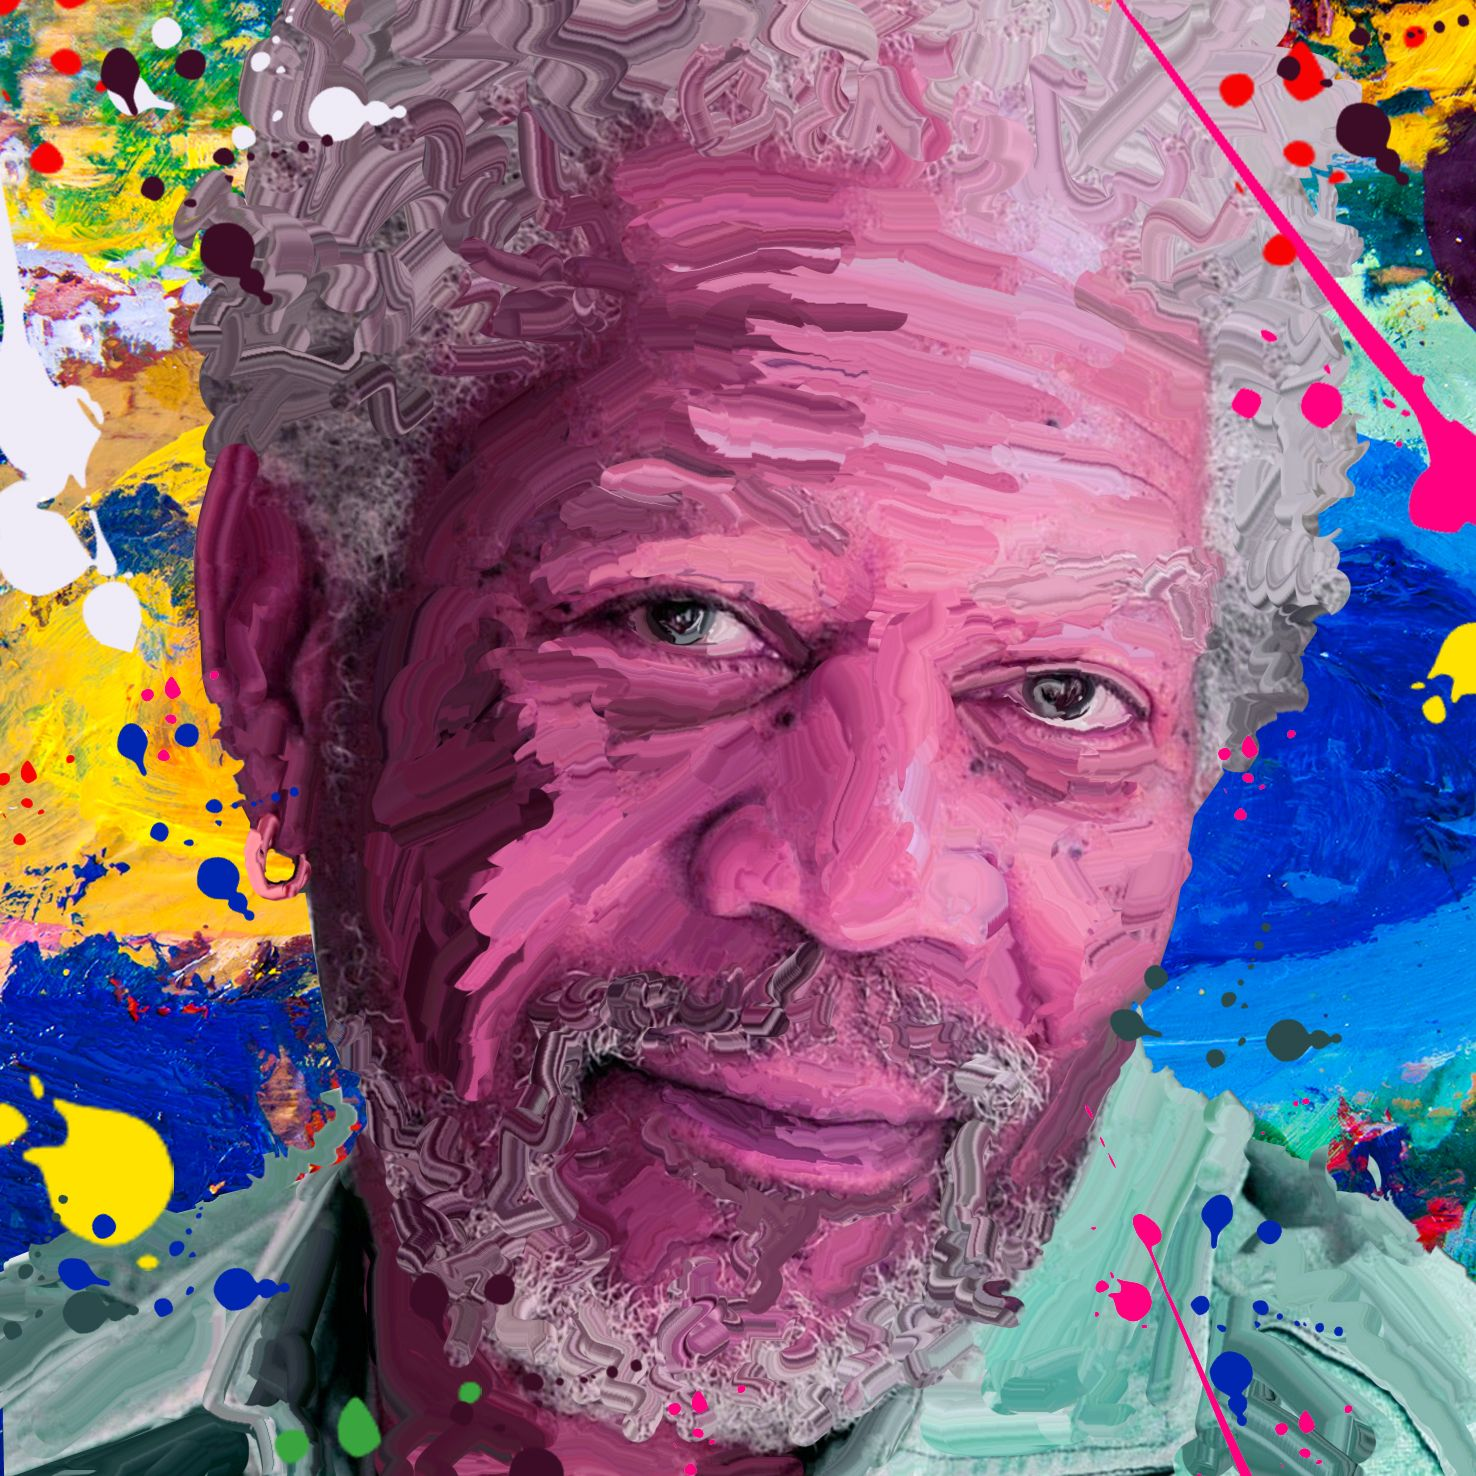 Hard smudge paint effect morgan freeman photoshop tutorial hard smudge paint effect morgan freeman photoshop tutorial httpyoutu baditri Choice Image